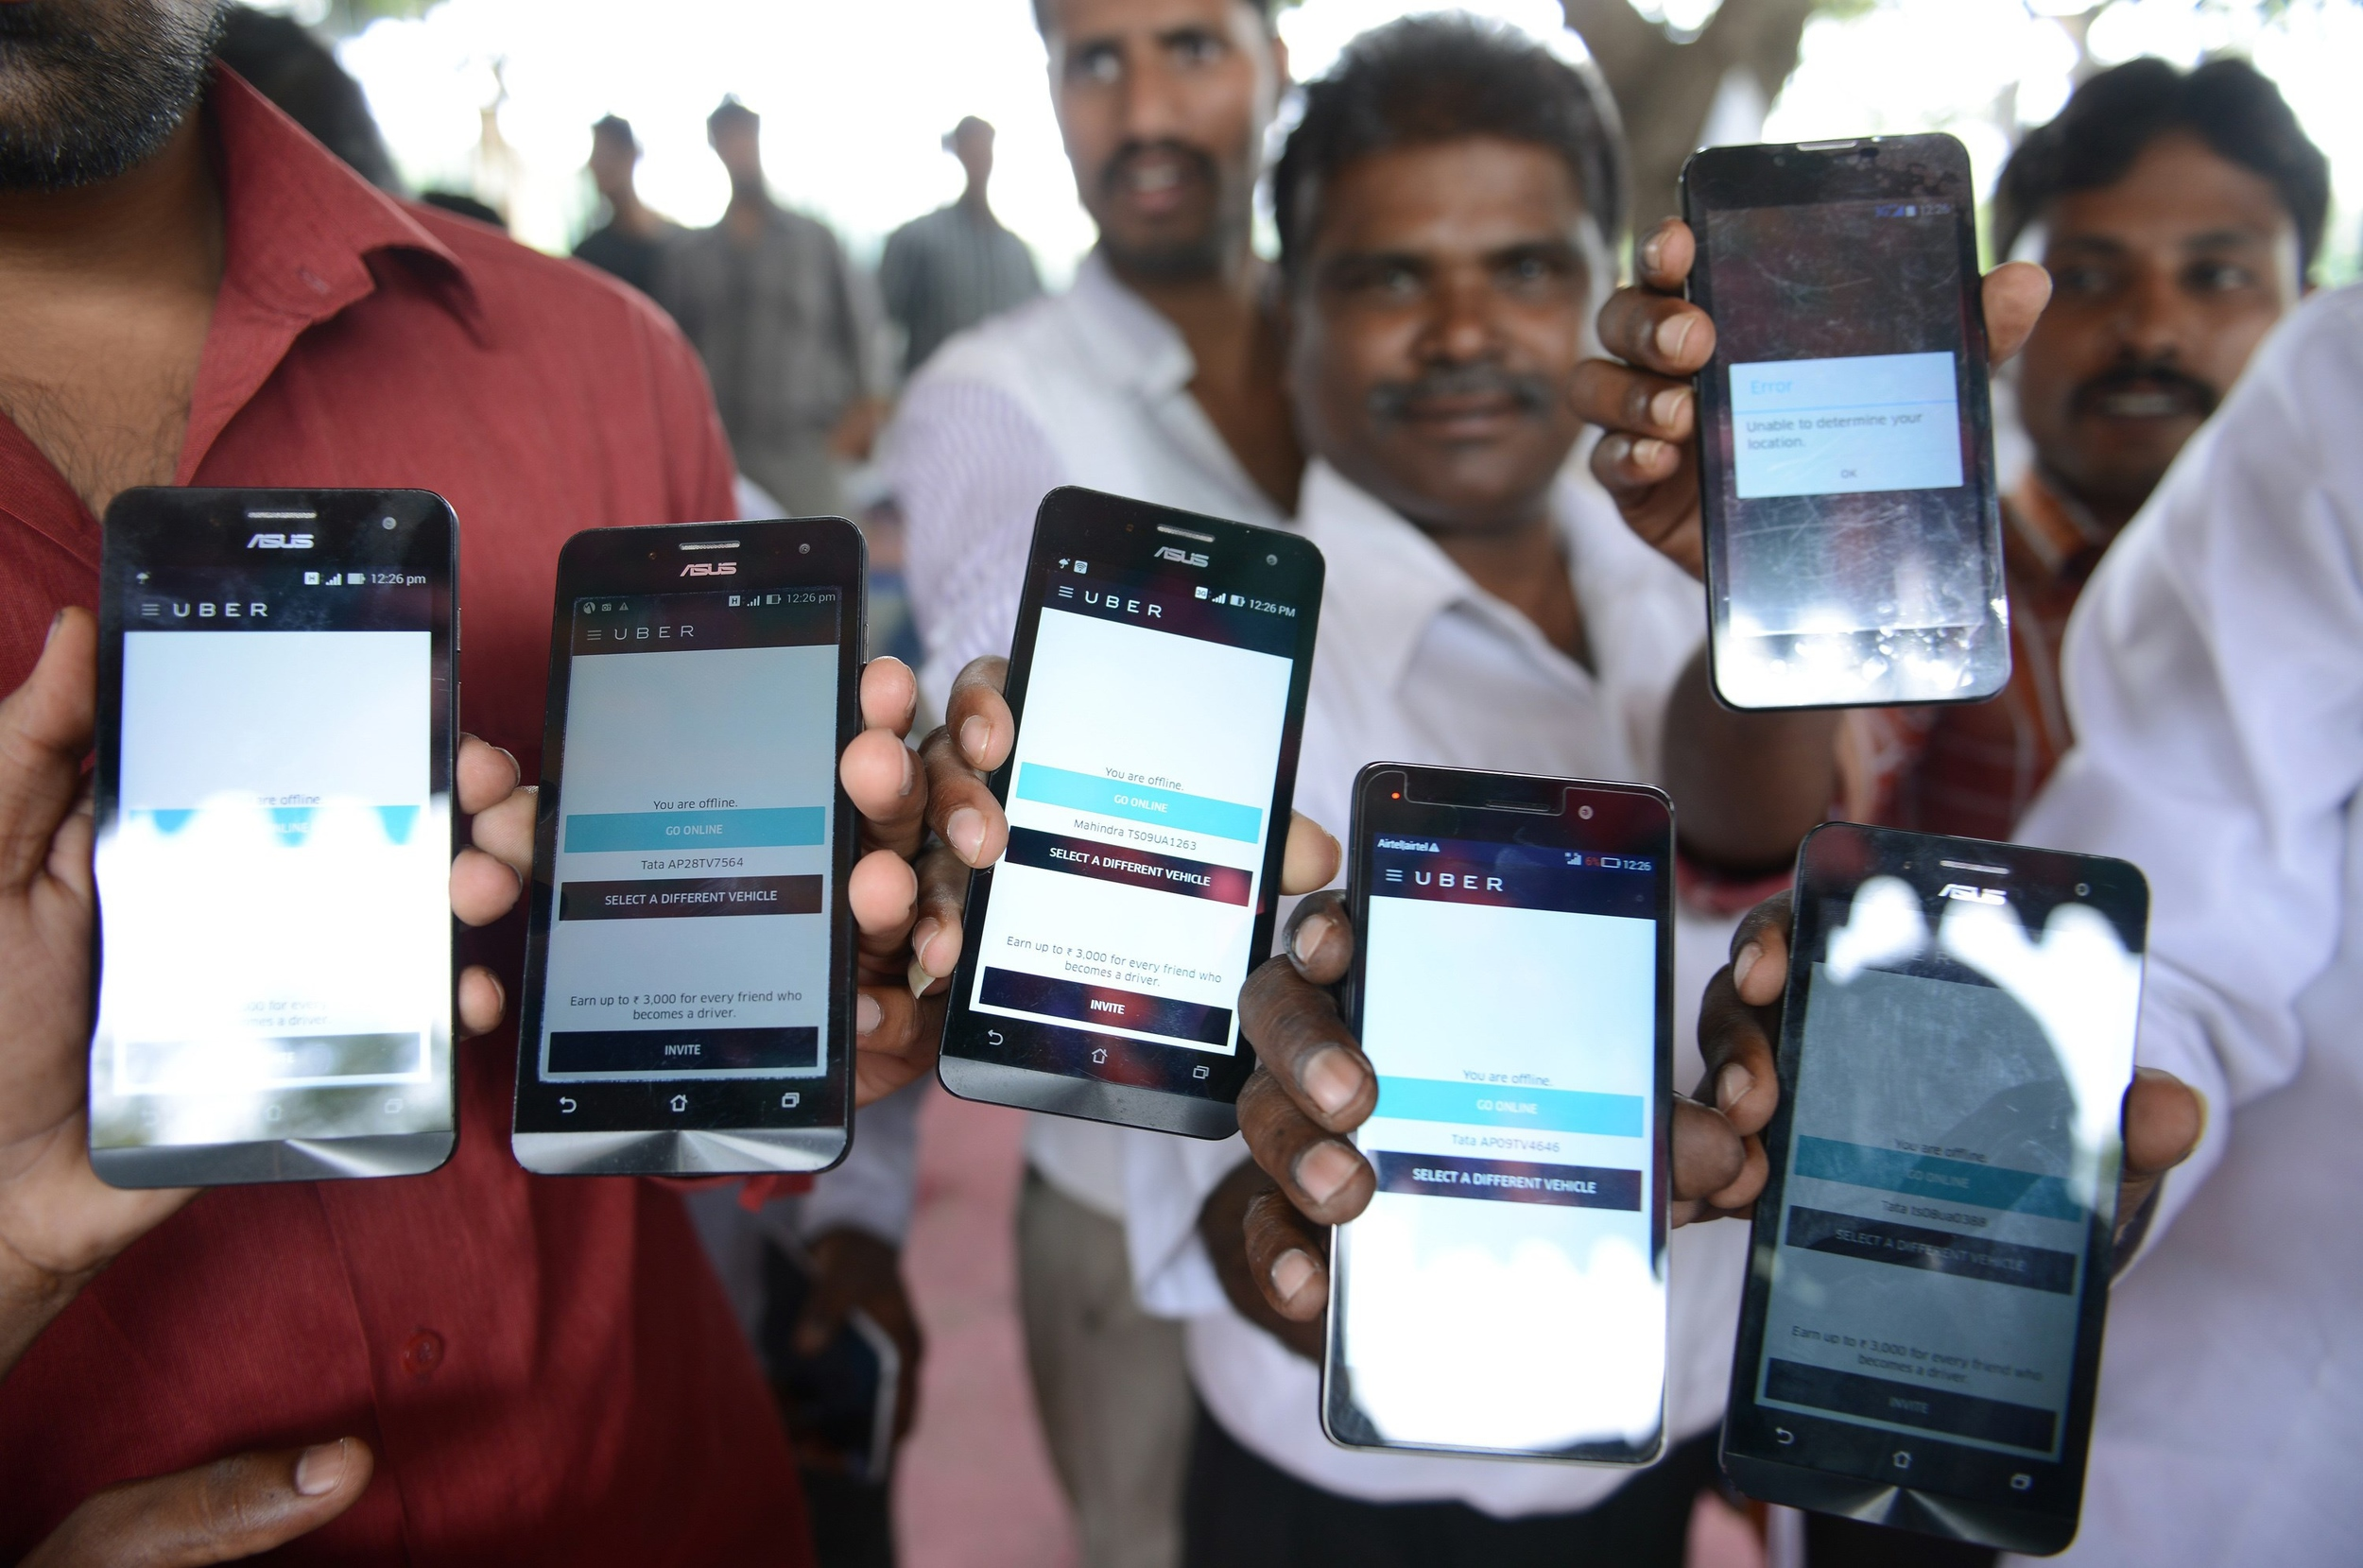 Indian drivers for Uber show mobiles phones given to them by the company. Credit: Noah Seelam / AFP